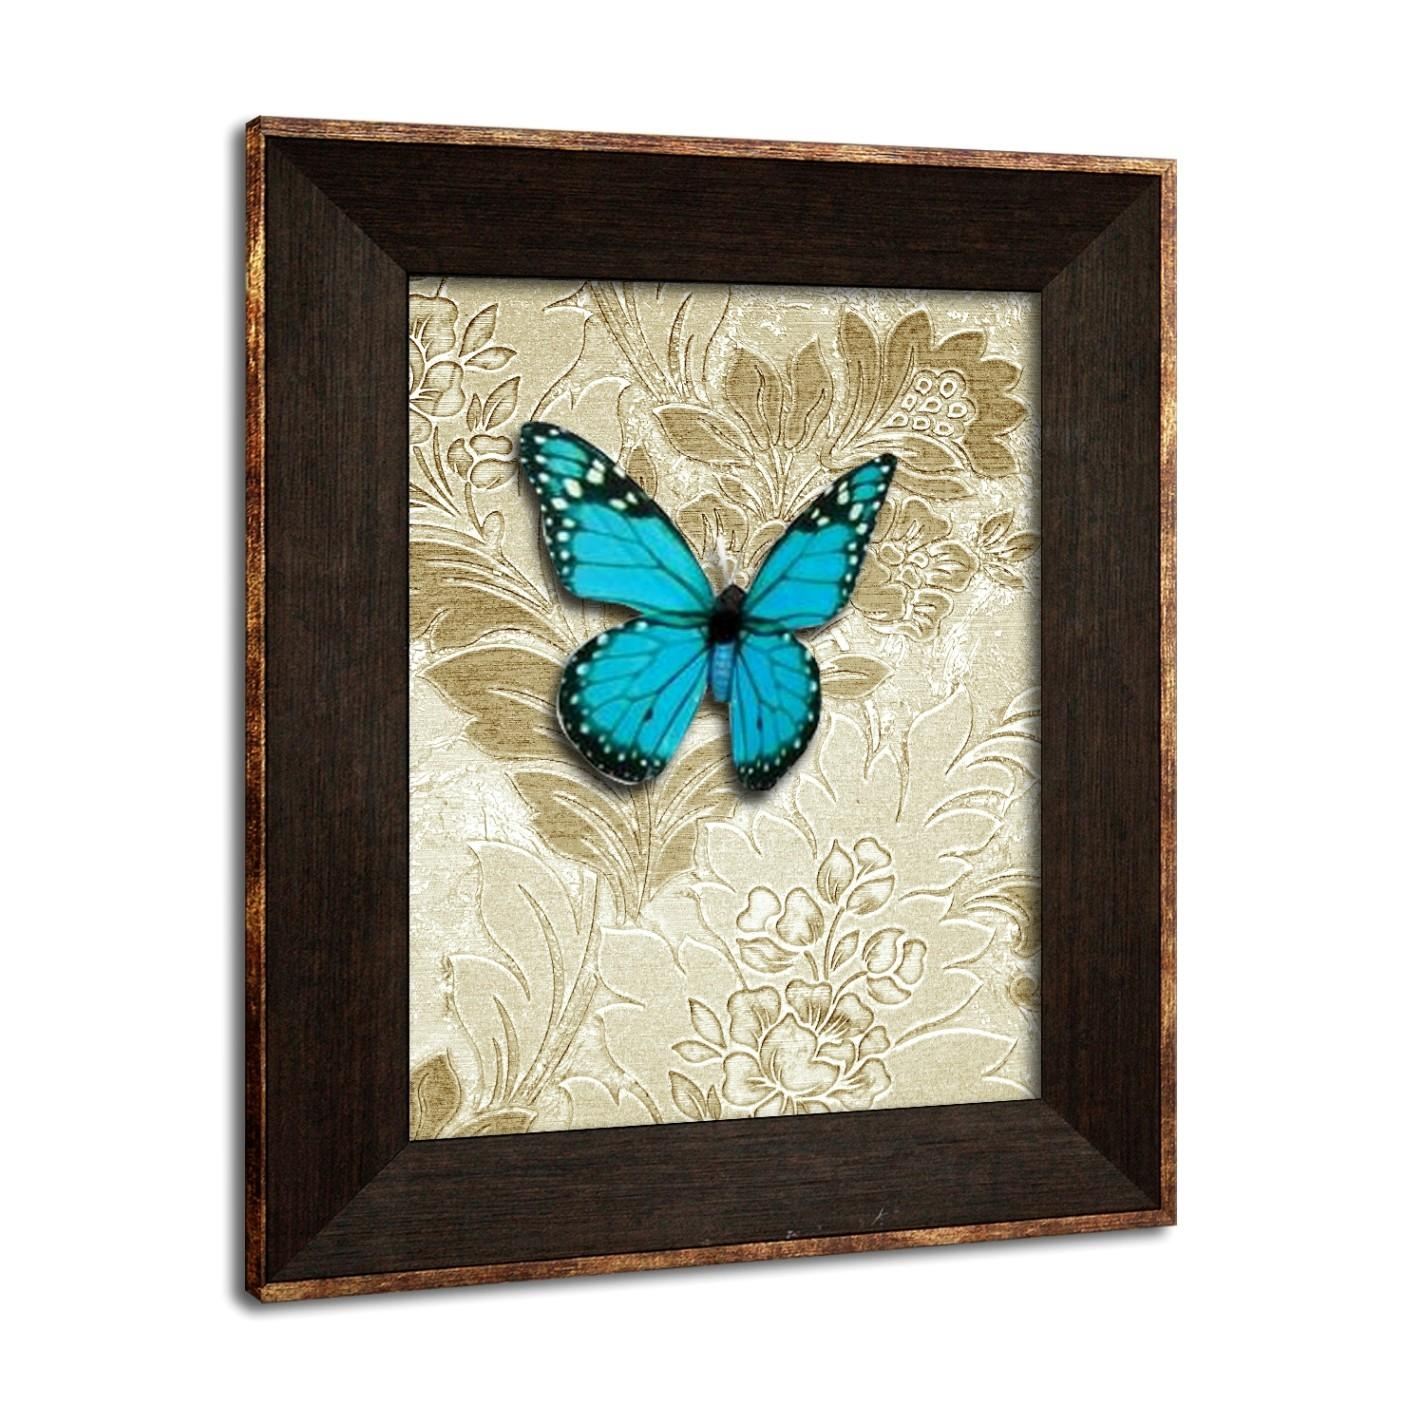 Awesome Turquoise Butterfly Wall Decor In Turquoise And Brown Wall Art (Image 5 of 20)